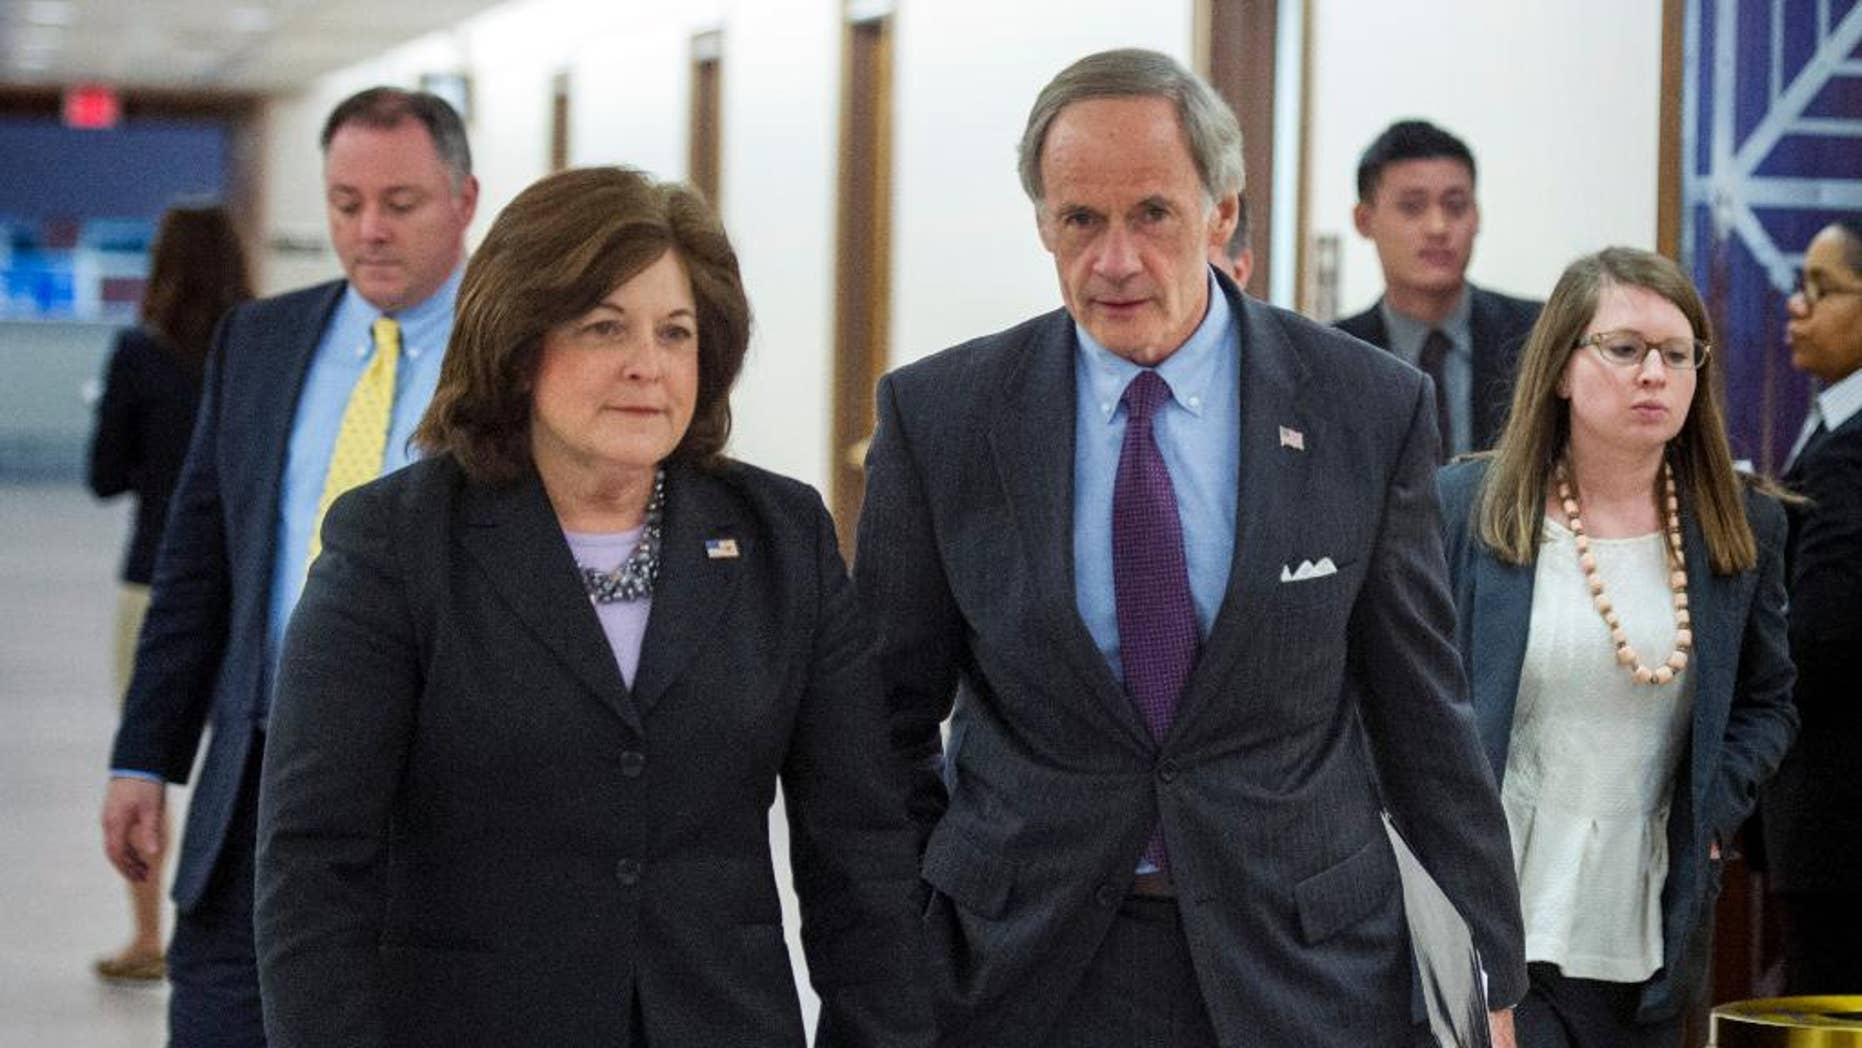 United States Secret Service director Julia Pierson and Senate Homeland Security Committee Chairman Tom Carper, D-Del., leave a committee hearing on recent Secret Service agents behavior, on Capitol Hill in Washington, Tuesday, April 1, 2014. (AP Photo/Cliff Owen)